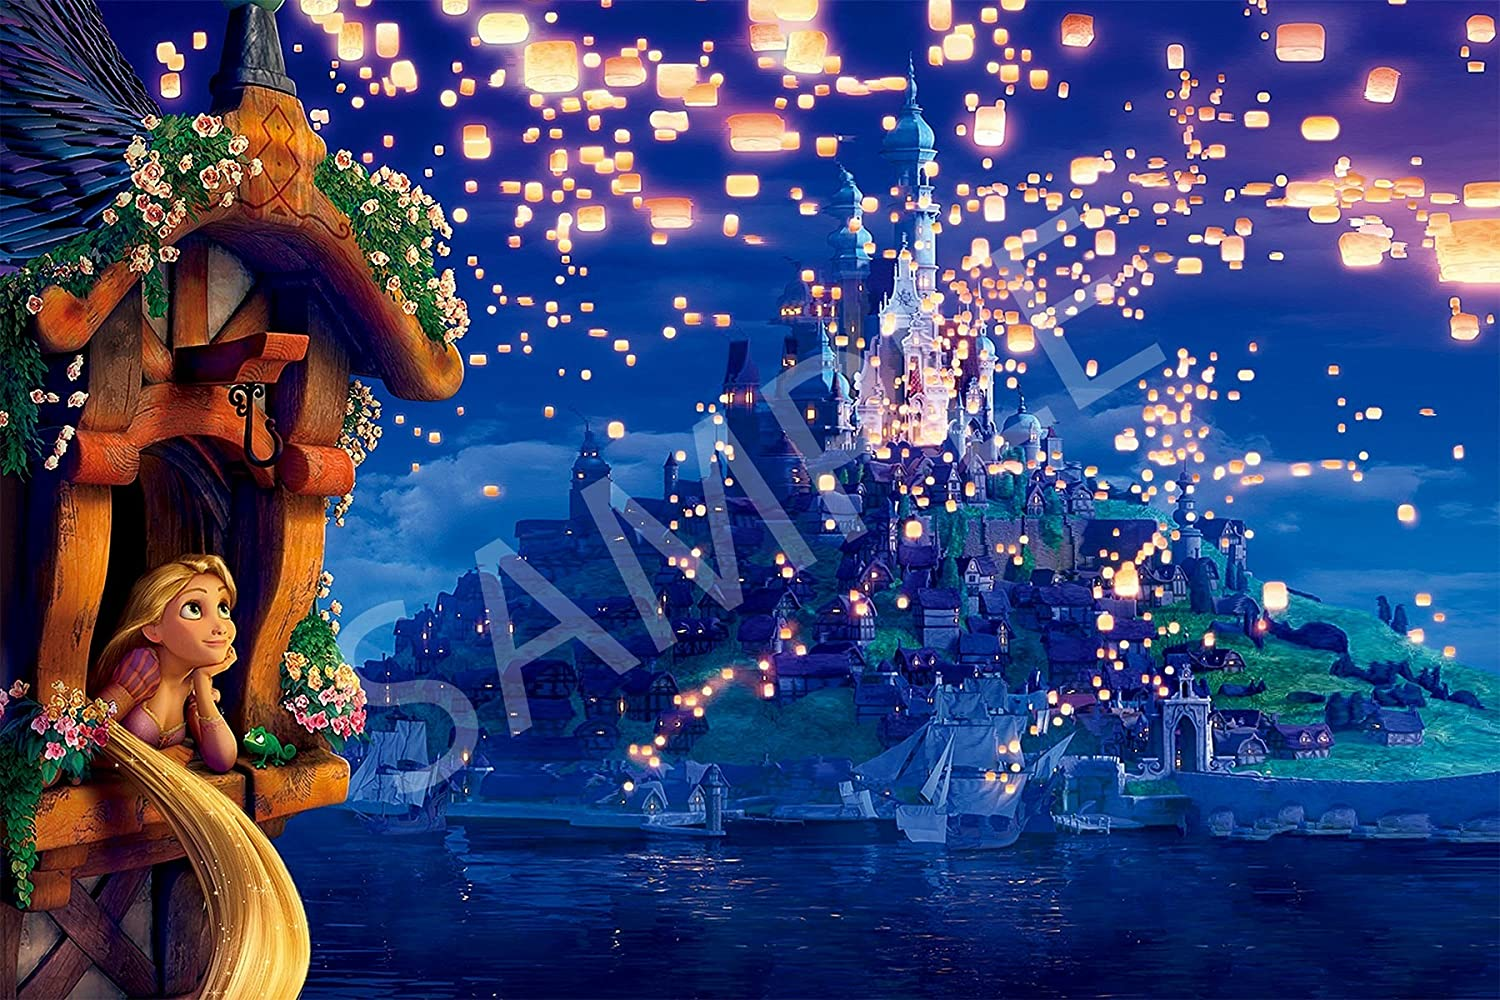 Amazon Com Best Print Store Disney Tangled Rapunzel Looking At Lanterns Kingdom Castle Scenery Poster 11x17 Inches Posters Prints